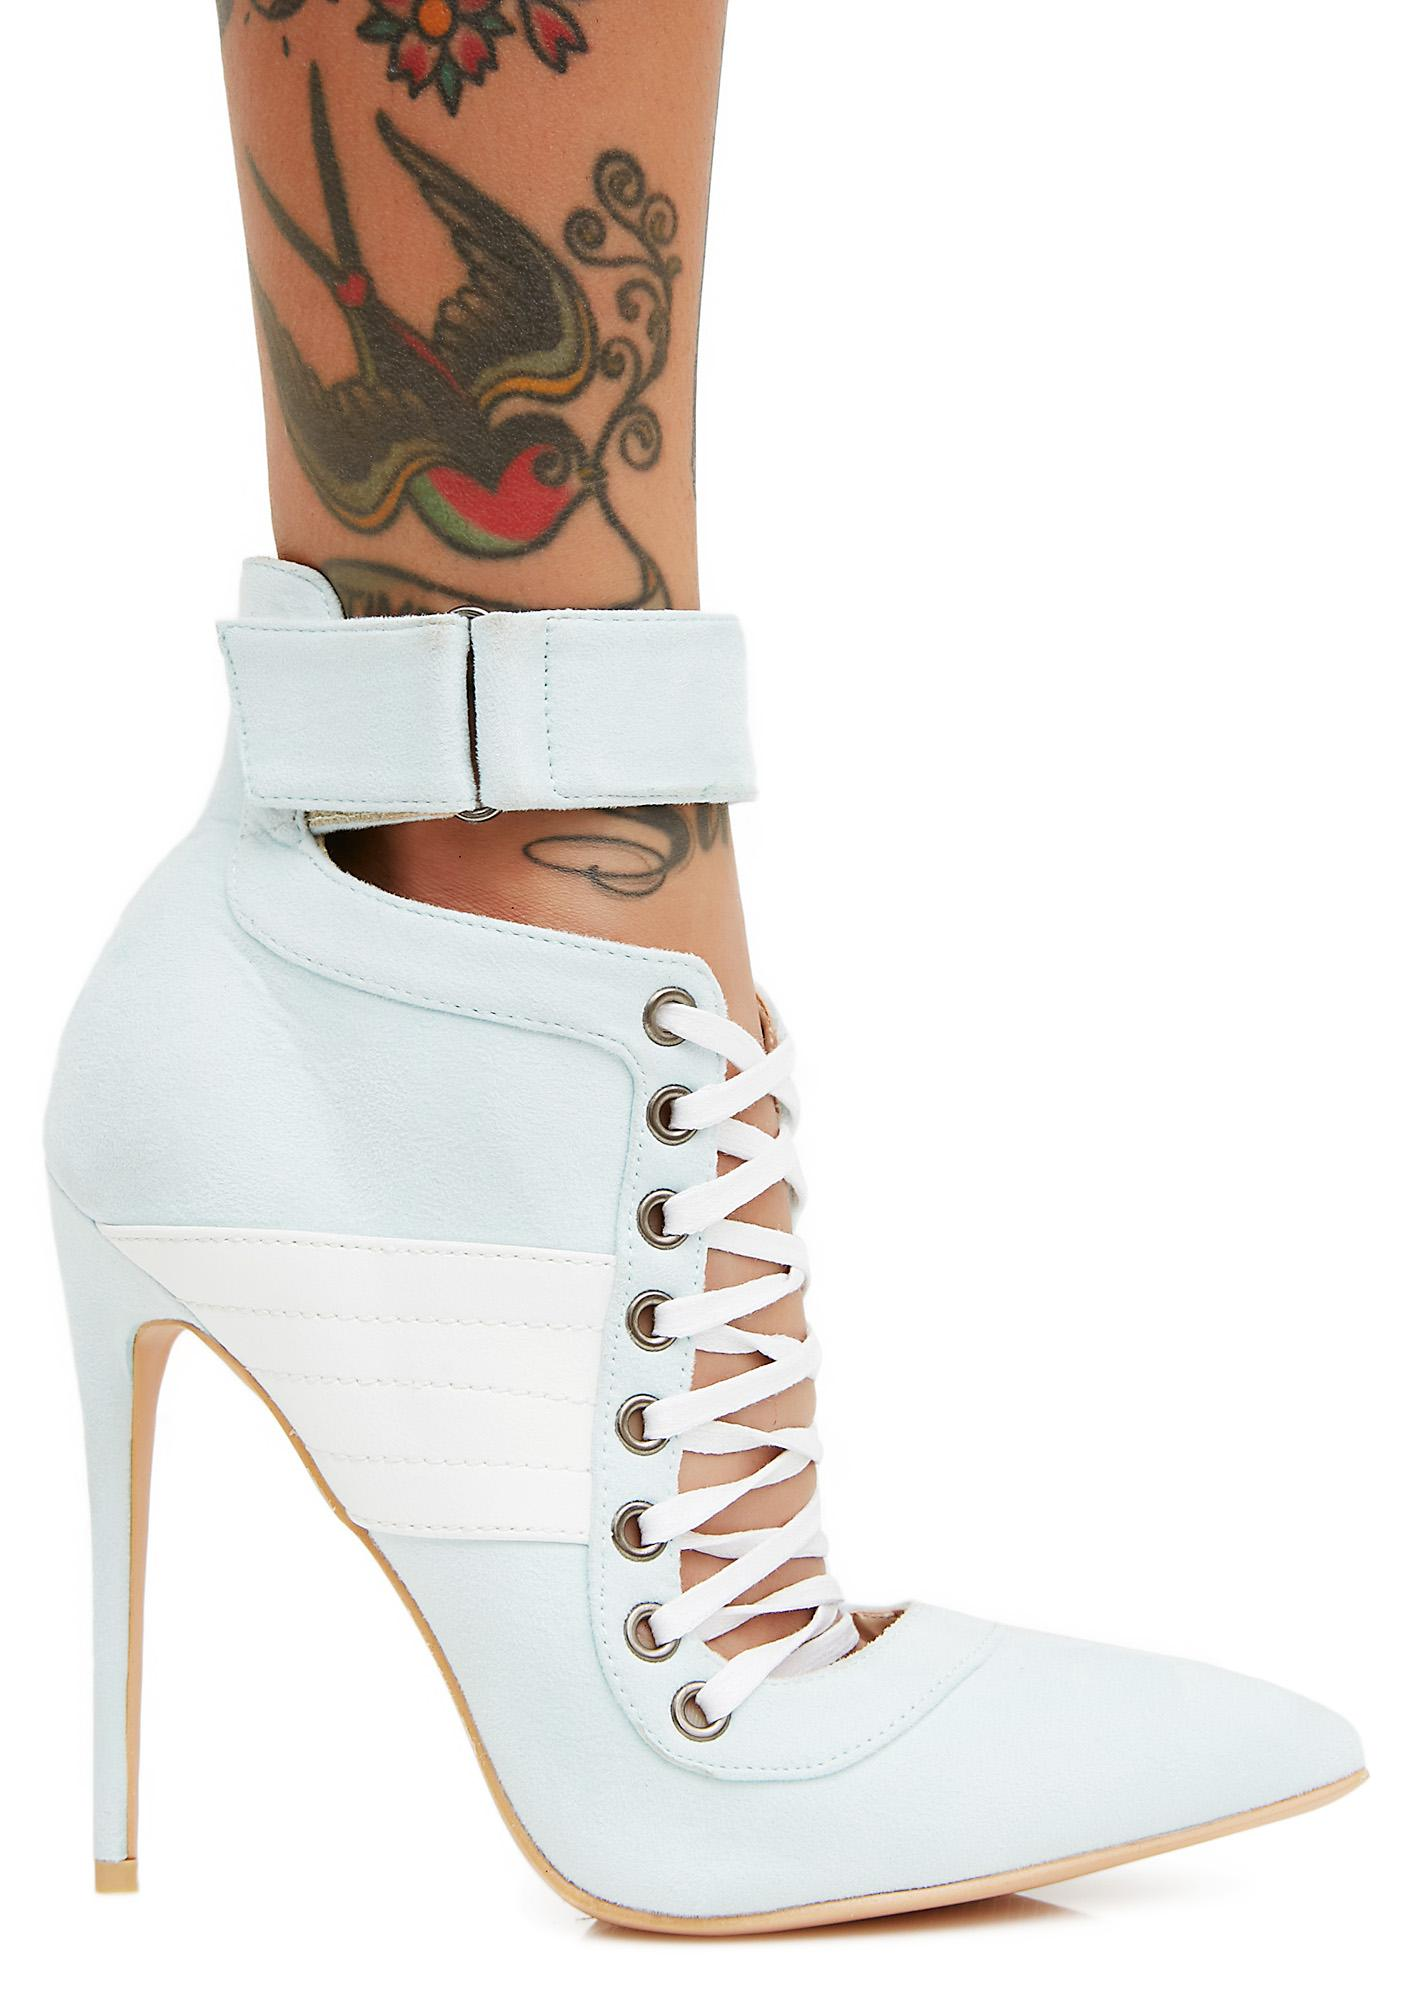 Public Desire Icy Fifi Lace Up Stiletto Ankle Boots